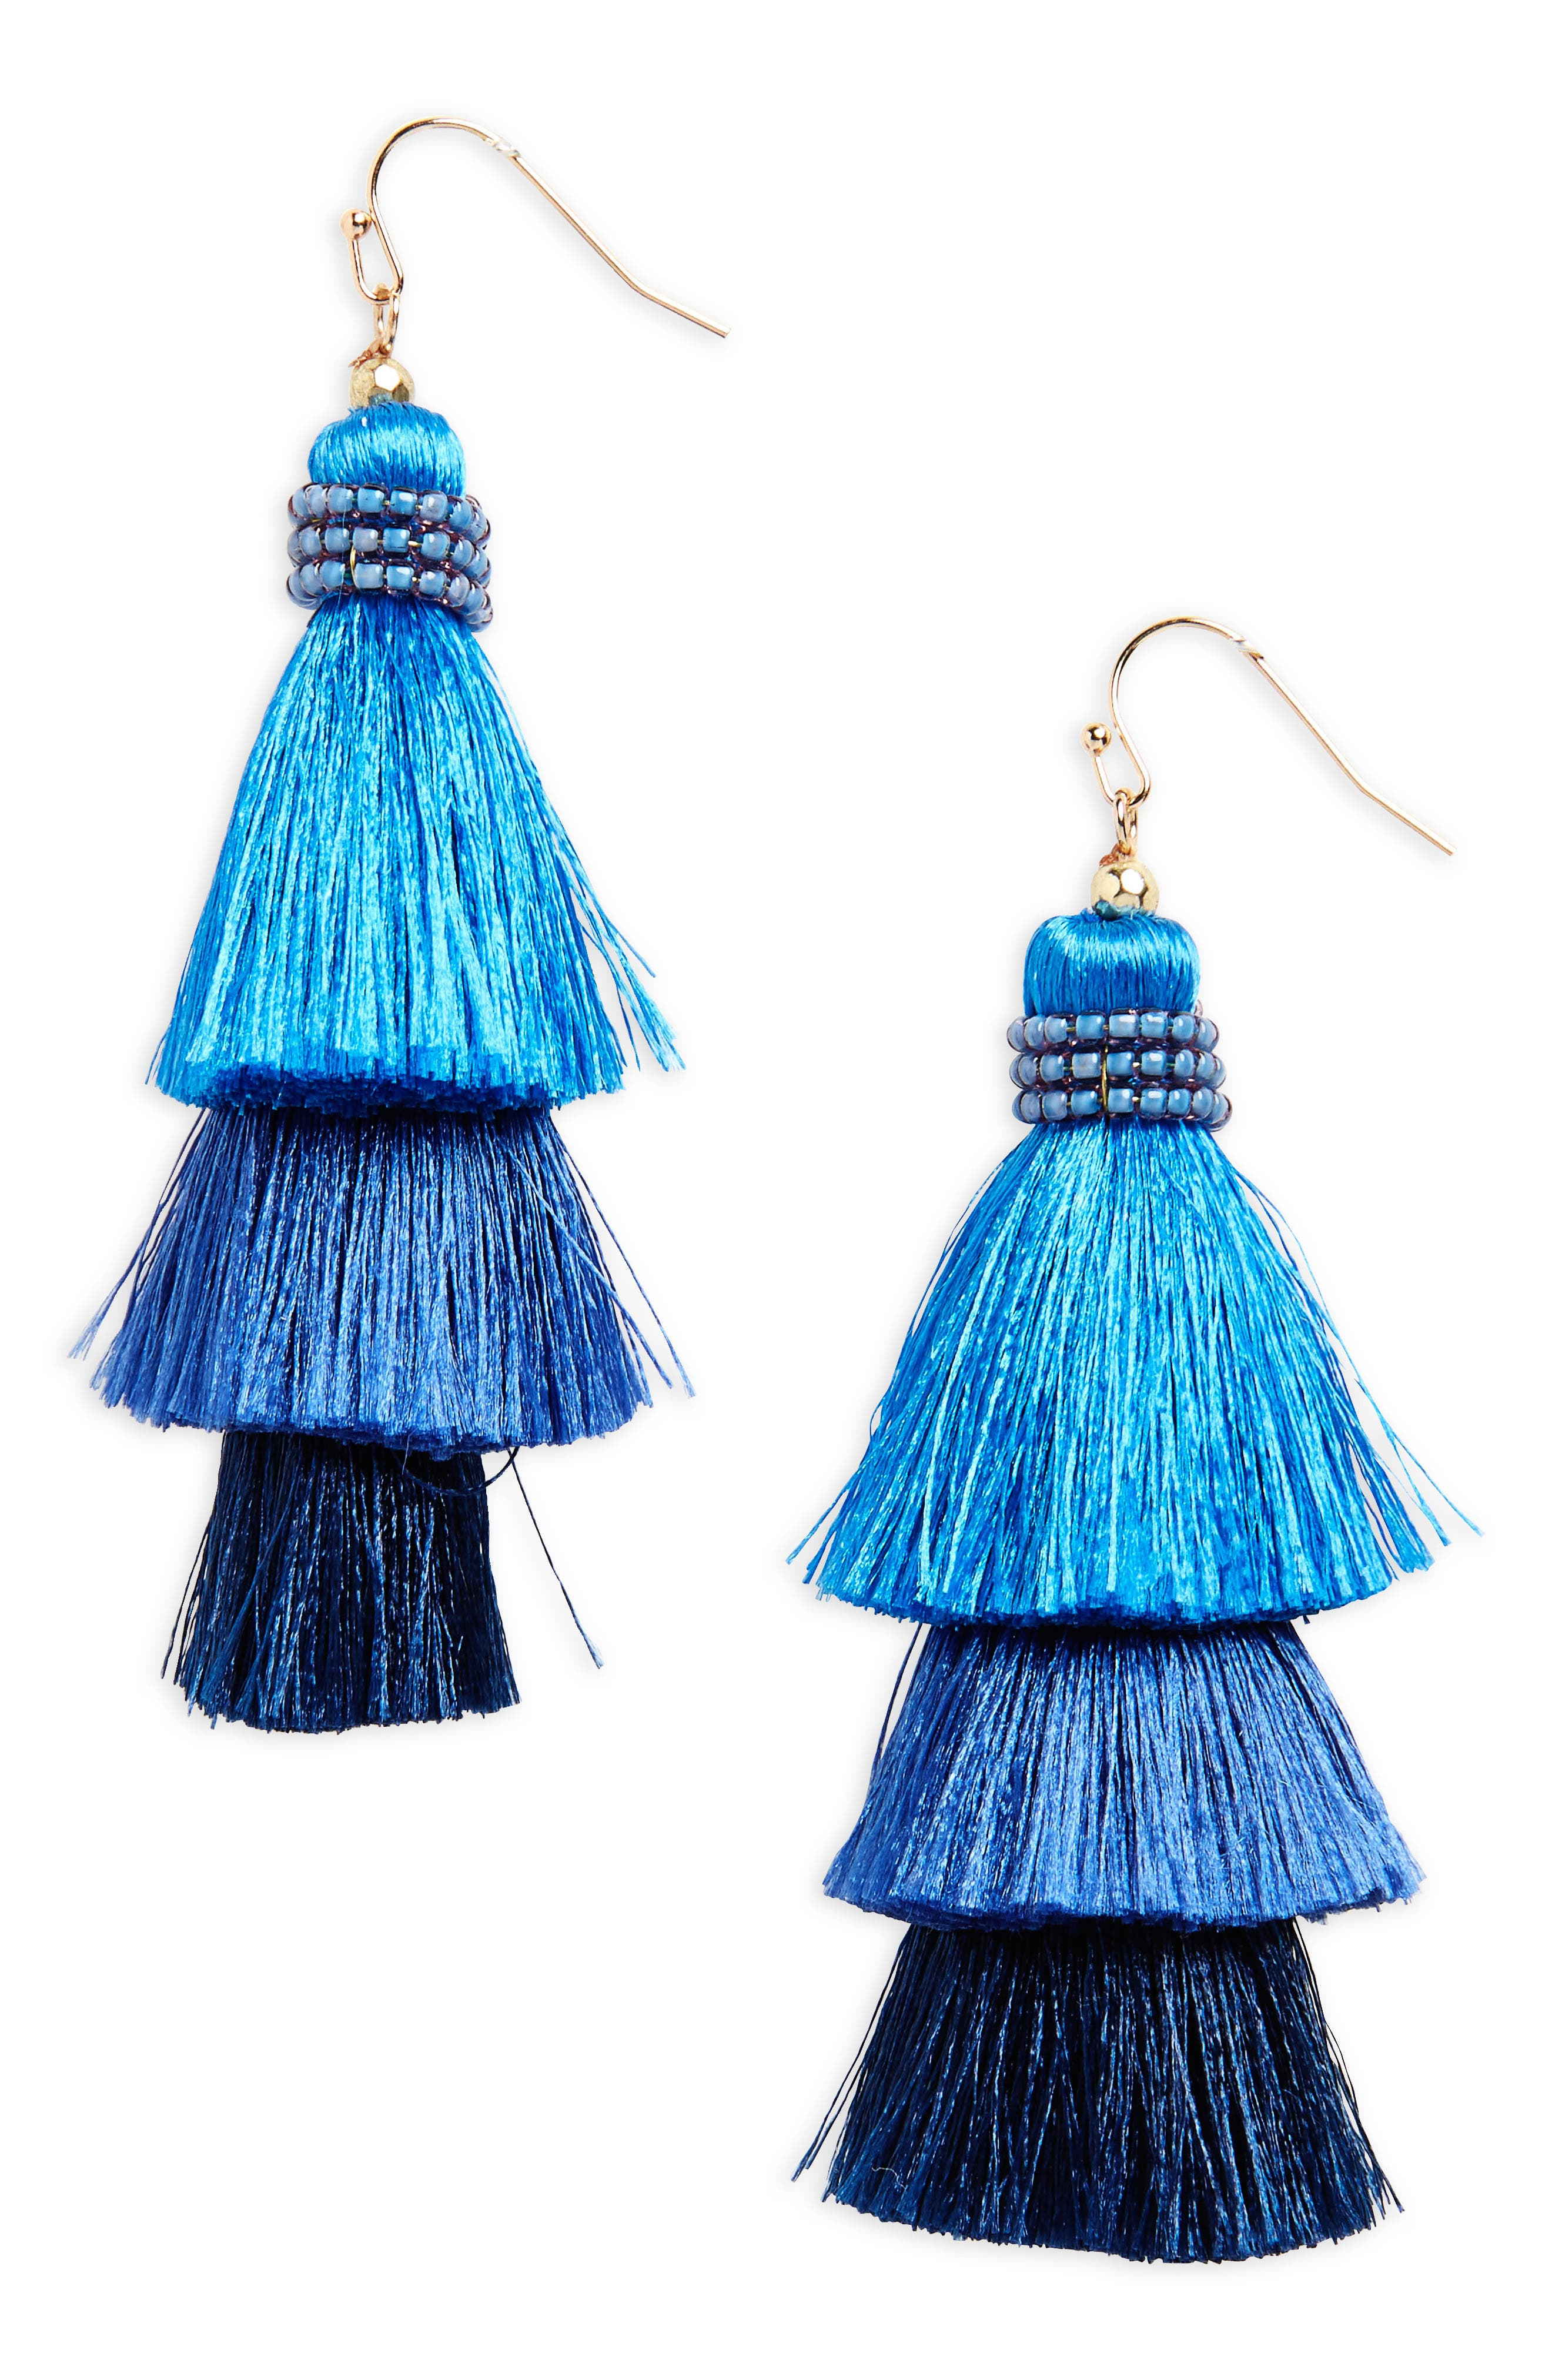 Tiered Tassel Earrings,                             Main thumbnail 1, color,                             410